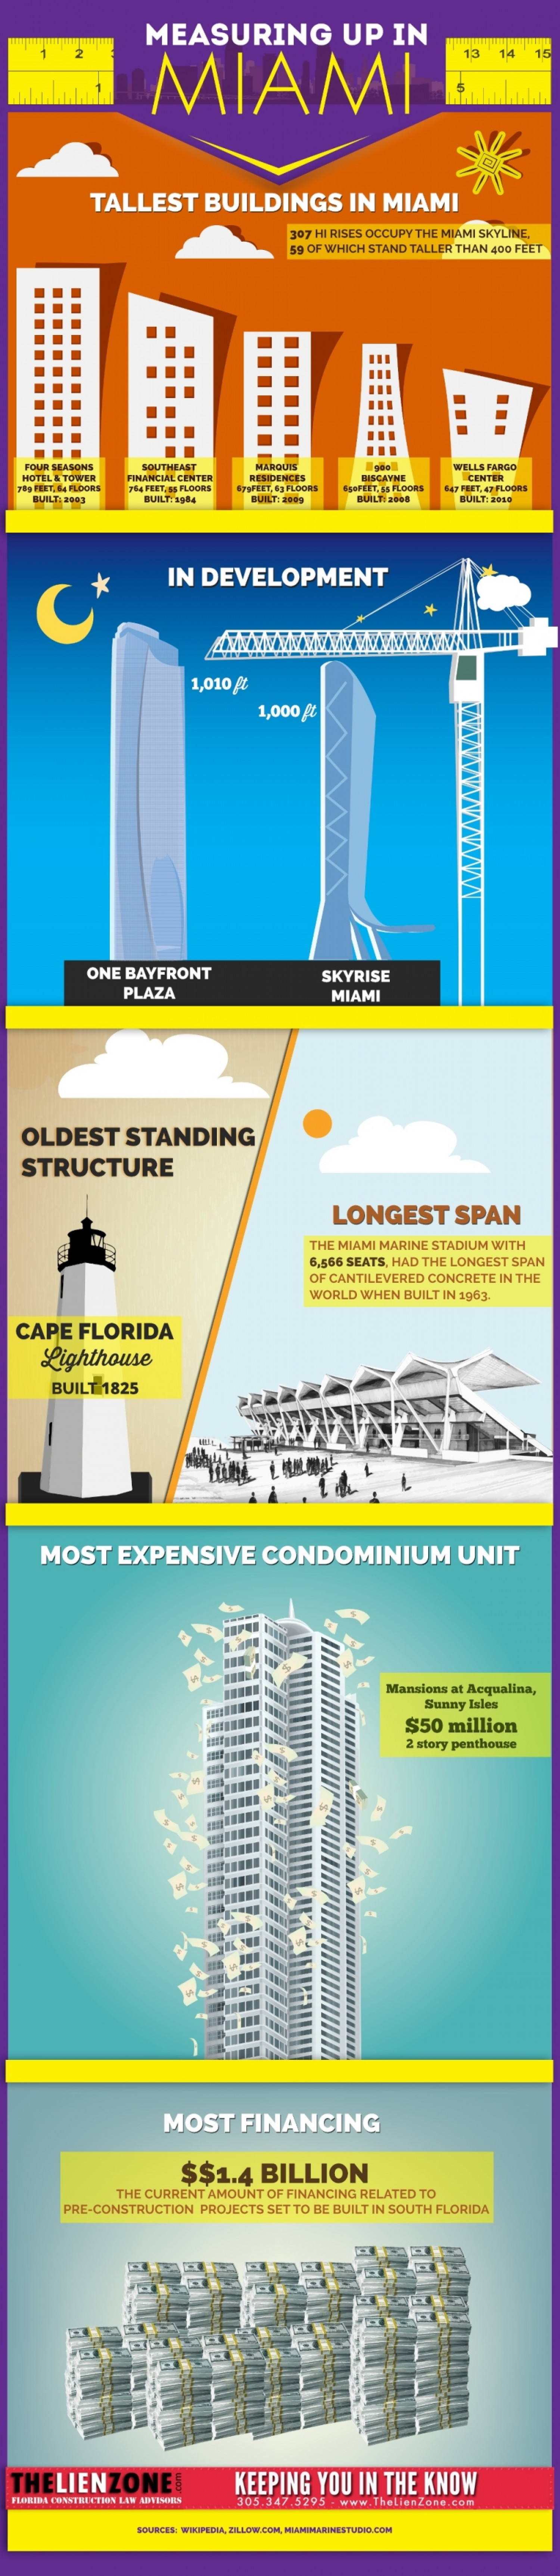 Measuring up in Miami Infographic